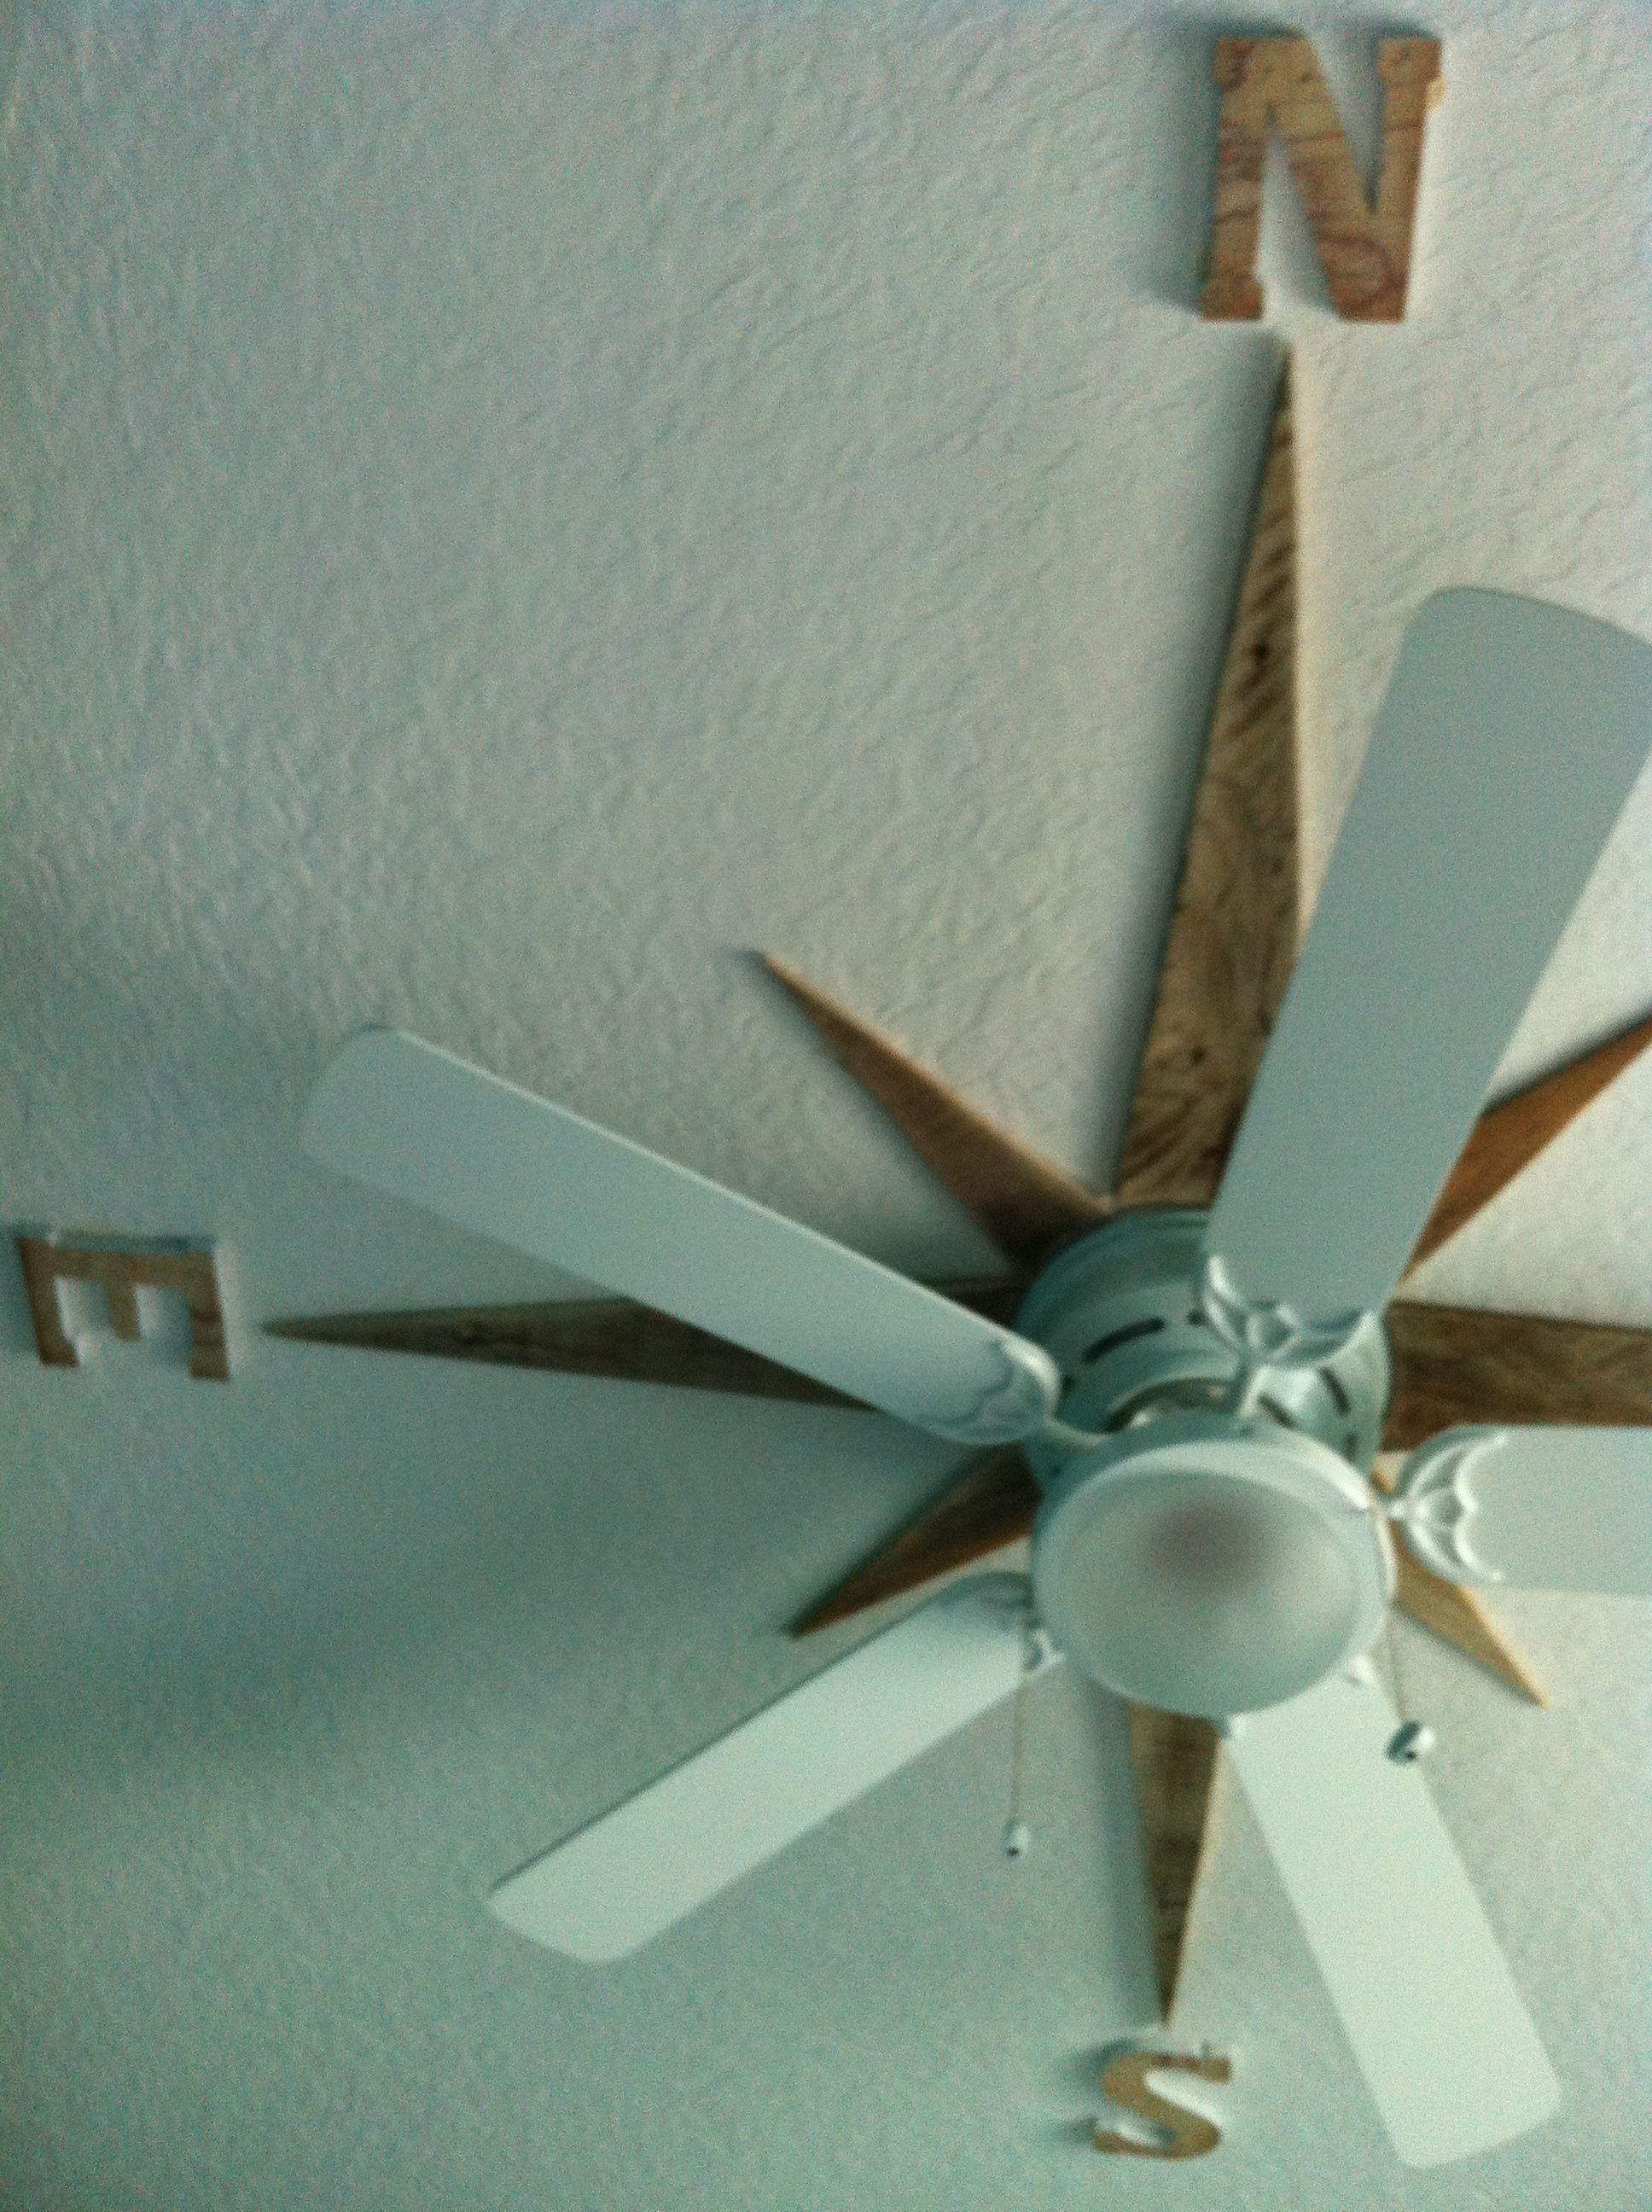 Diy Nautical Star On The Ceiling Around The Fan Using Pallet Wood